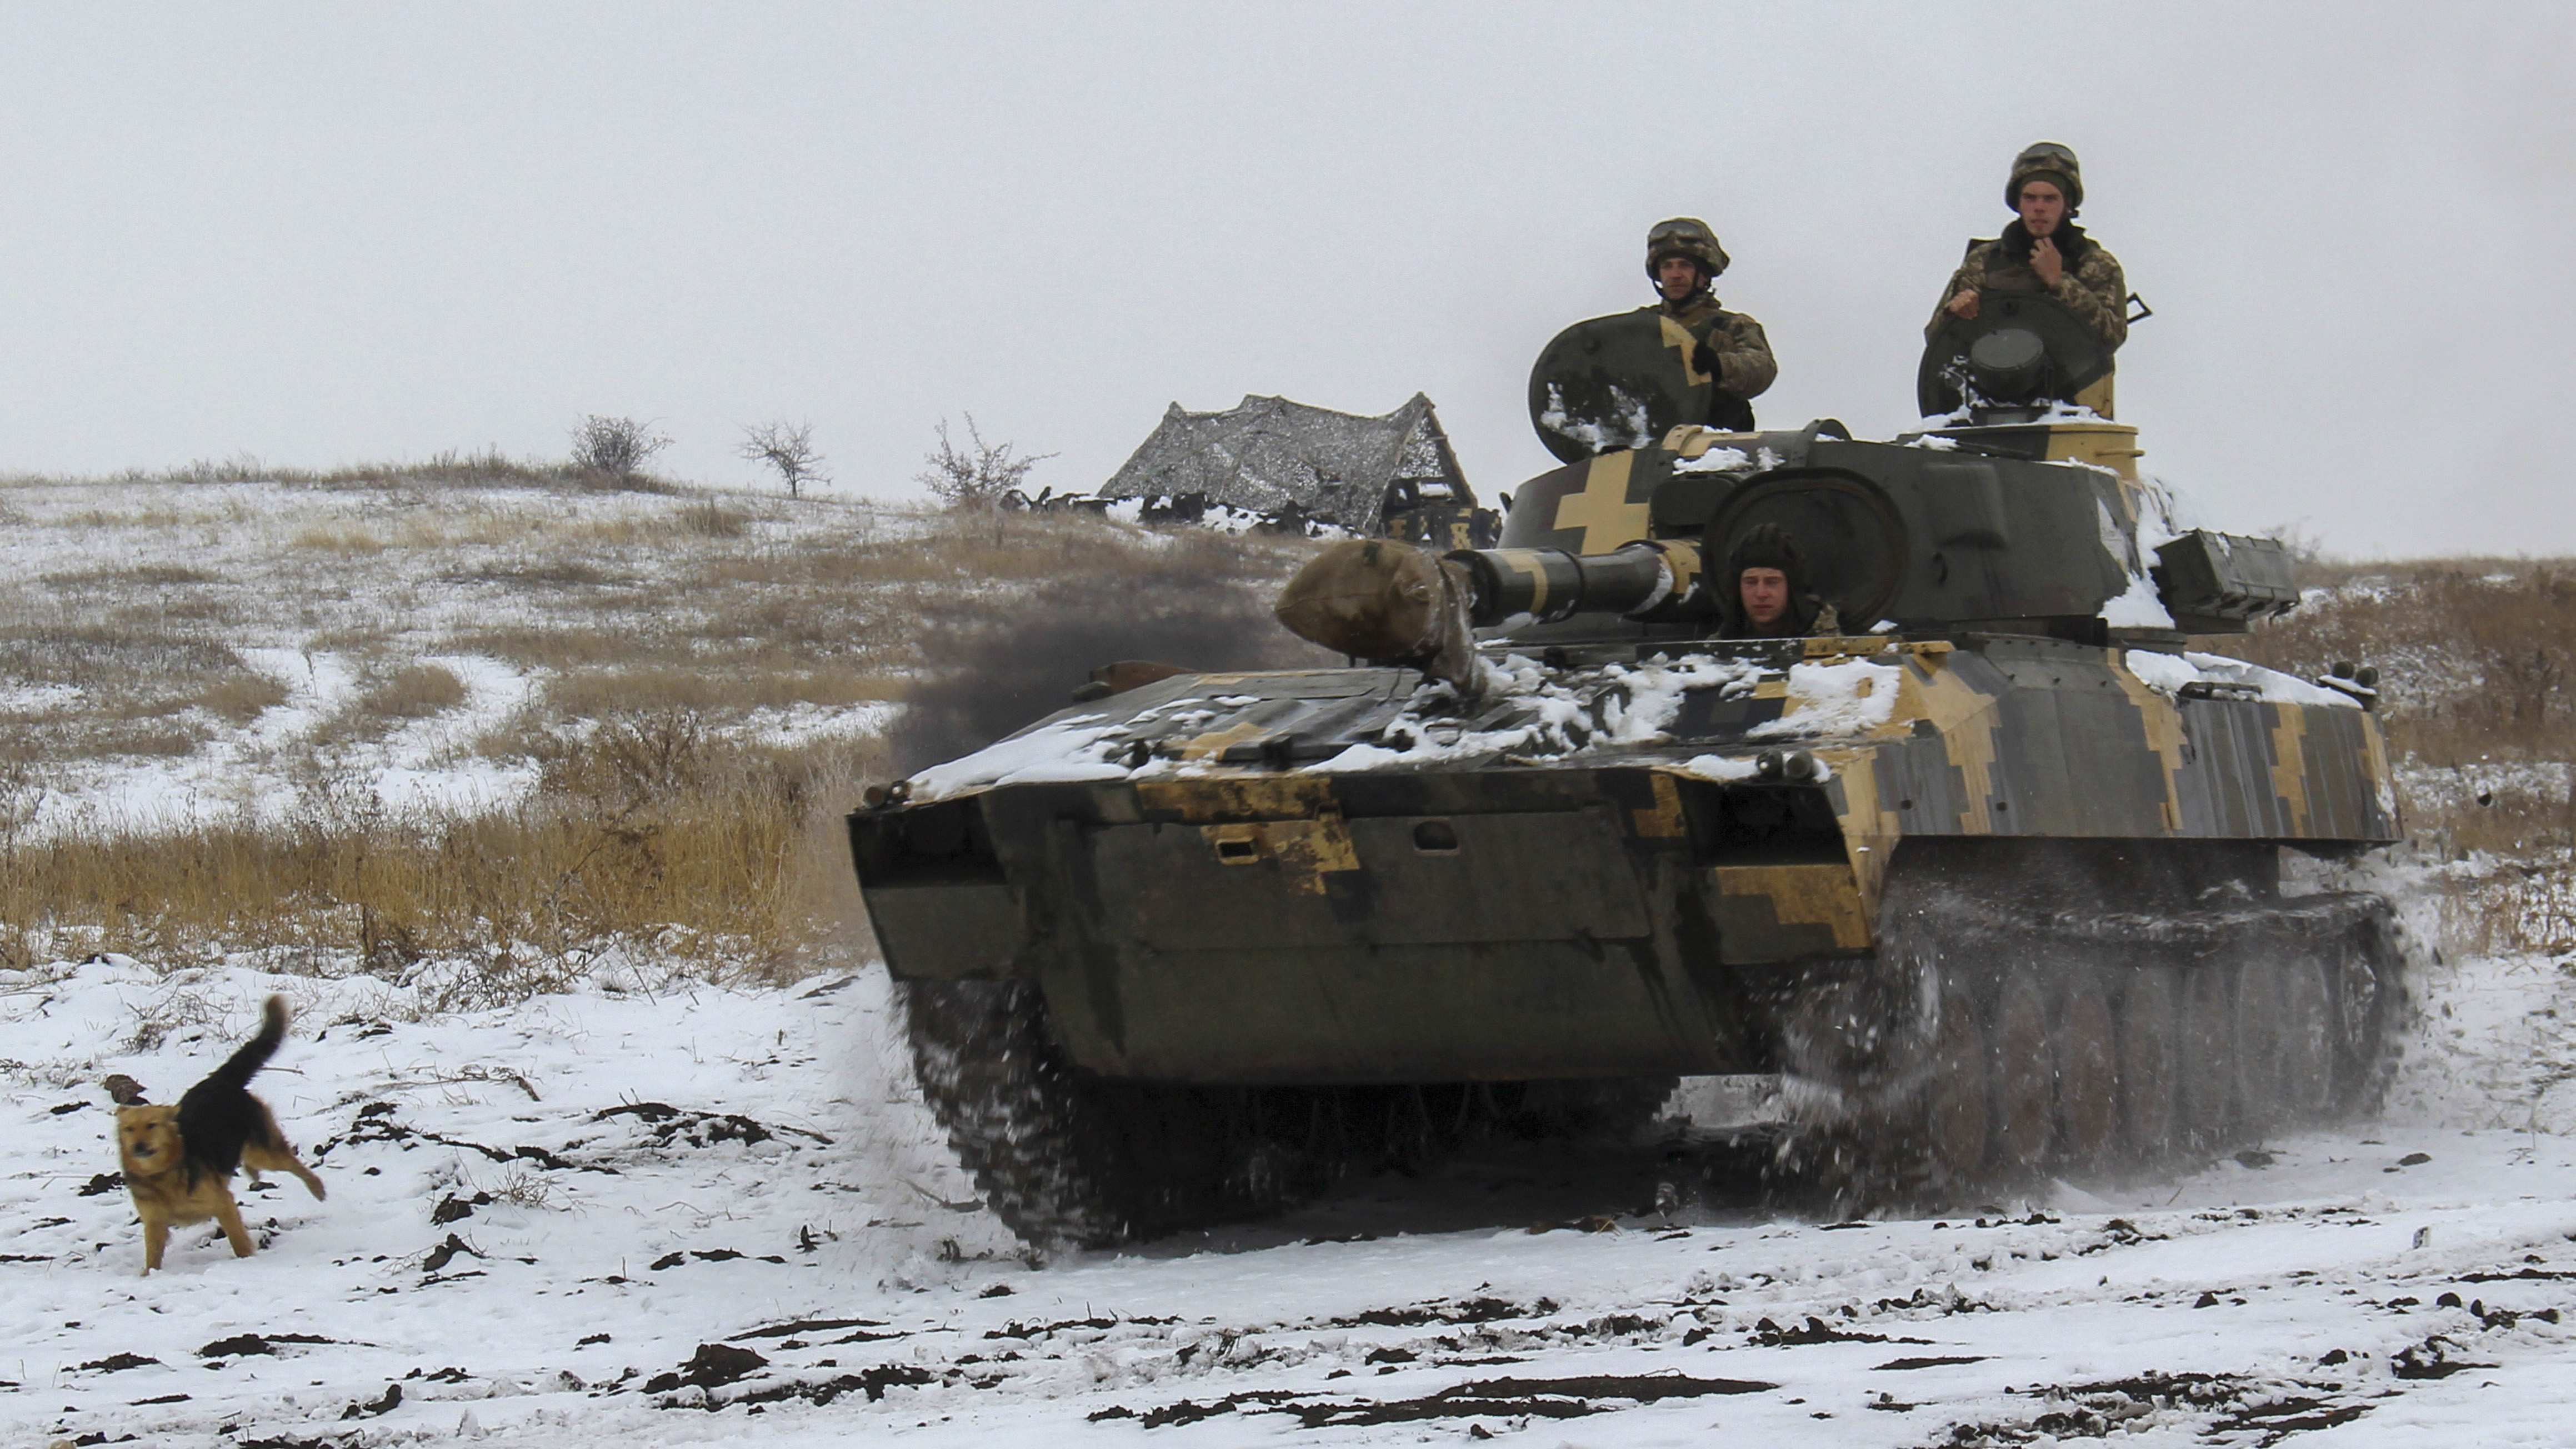 A Ukraine army APC moves toward on position at an undisclosed location in eastern Ukraine, Monday, Nov. 26, 2018. Ukrainian lawmakers were set to consider a presidential request for the introduction of martial law in the country on Monday following an incident in which Russian coast guard ships fired on Ukrainian navy vessels. (AP Photo/Alexander Shulman)